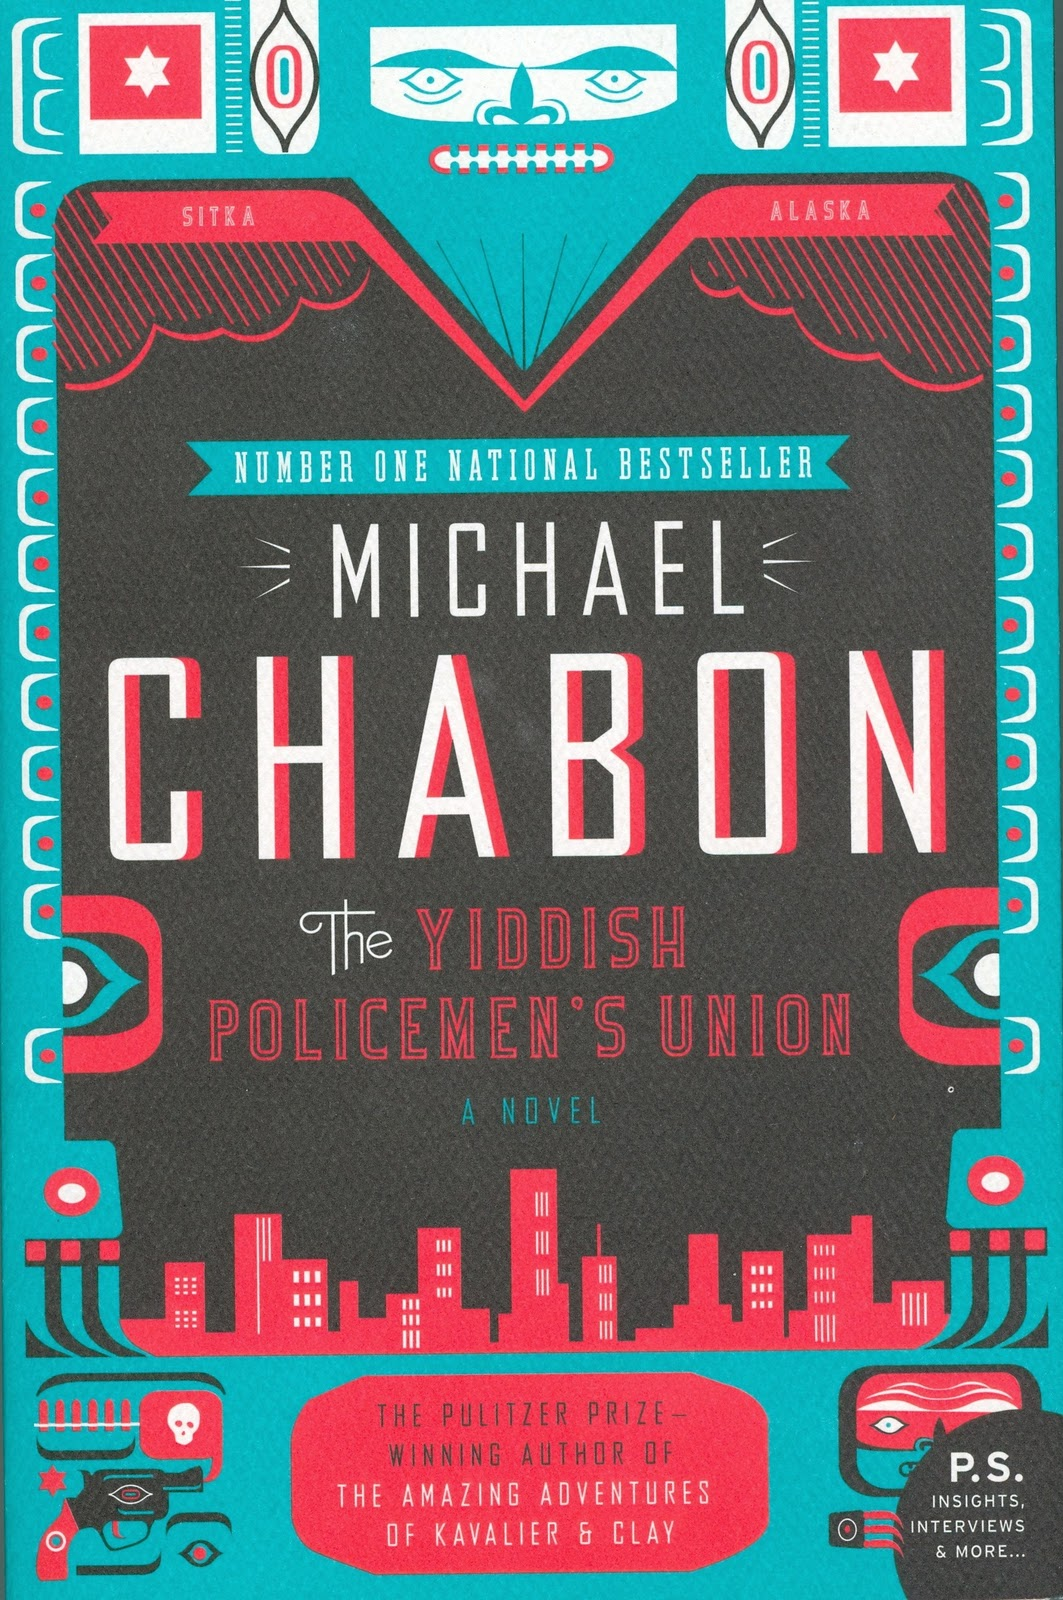 The Yiddish Policeman's Union